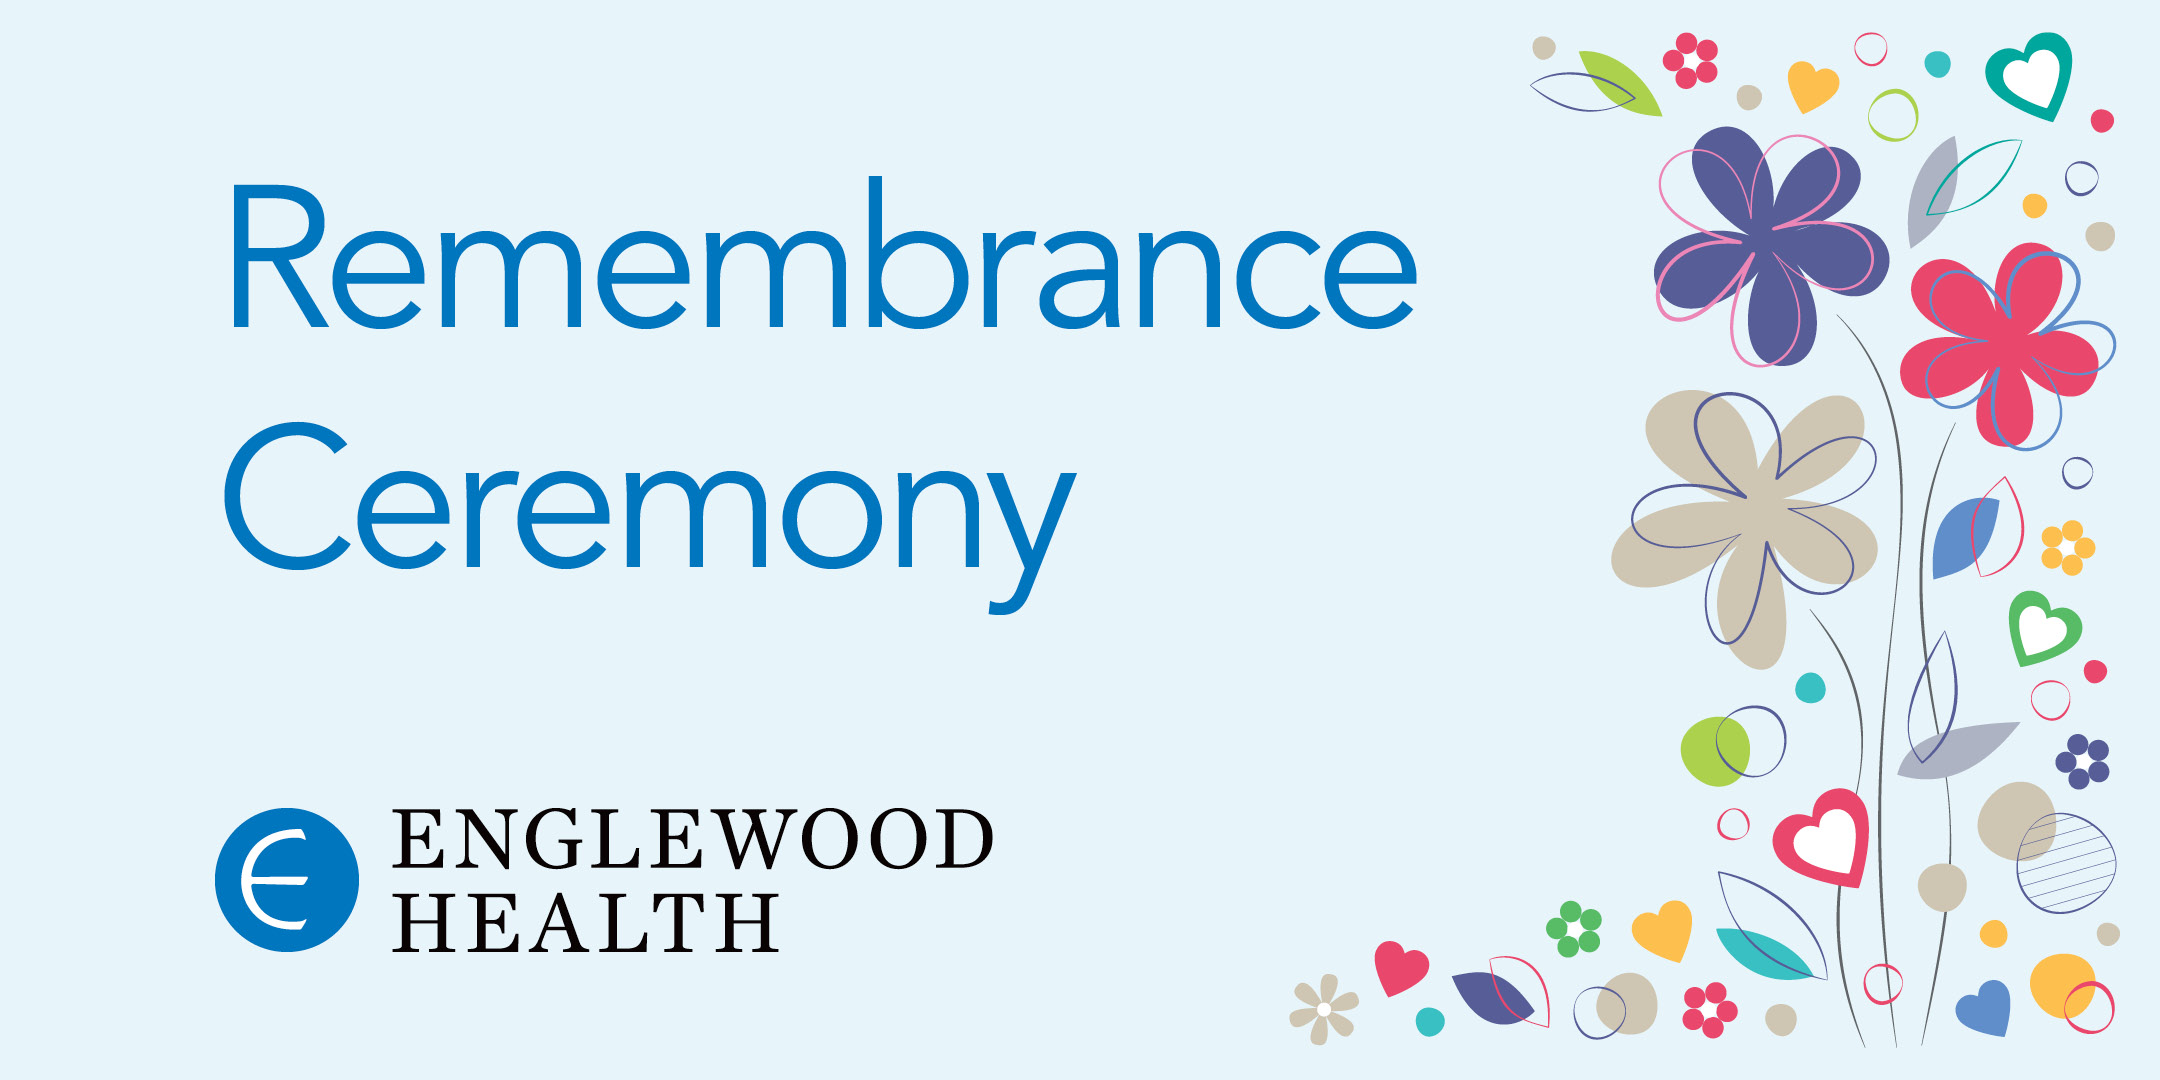 More info: Remembrance Ceremony and Reception